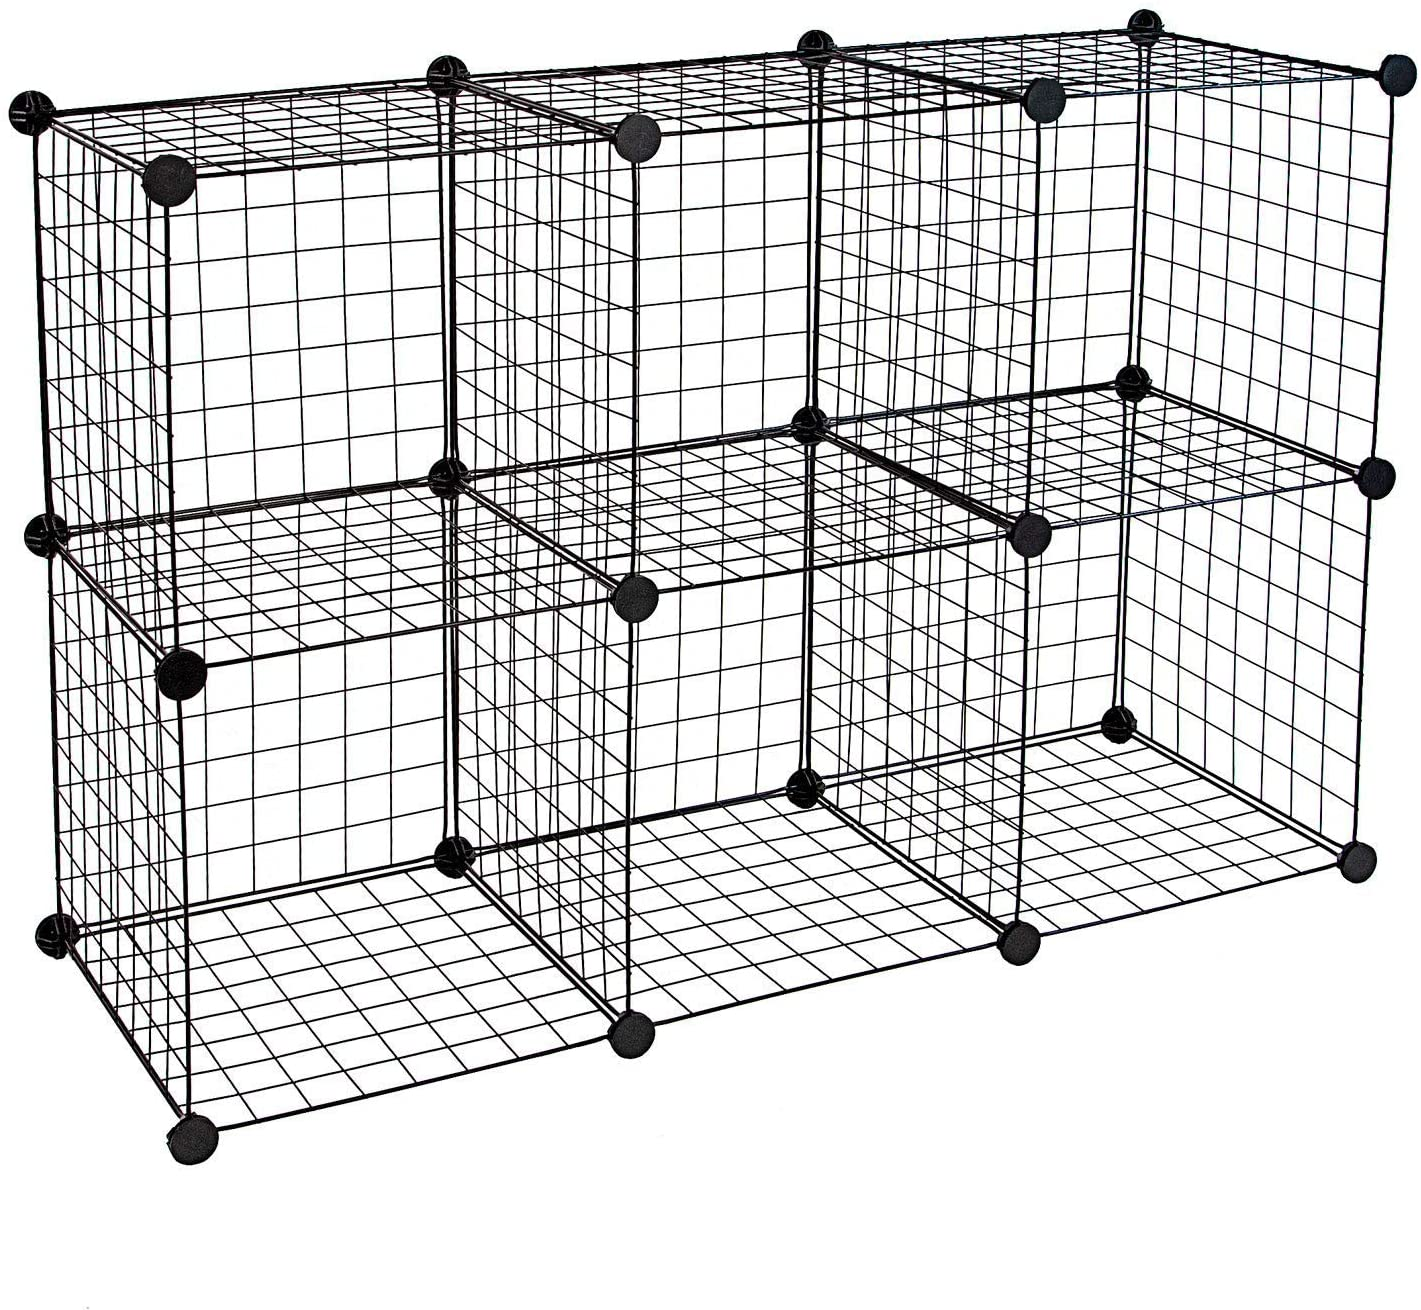 "Work-It! Wire Storage Cubes, 6-Cube Metal Grid Organizer | Modular Wire Shelving Units, Stackable Bookcase, DIY Closet Cabinet Organizer for Home, Office, Kids Room | 14"" W x 14"" H, Black"